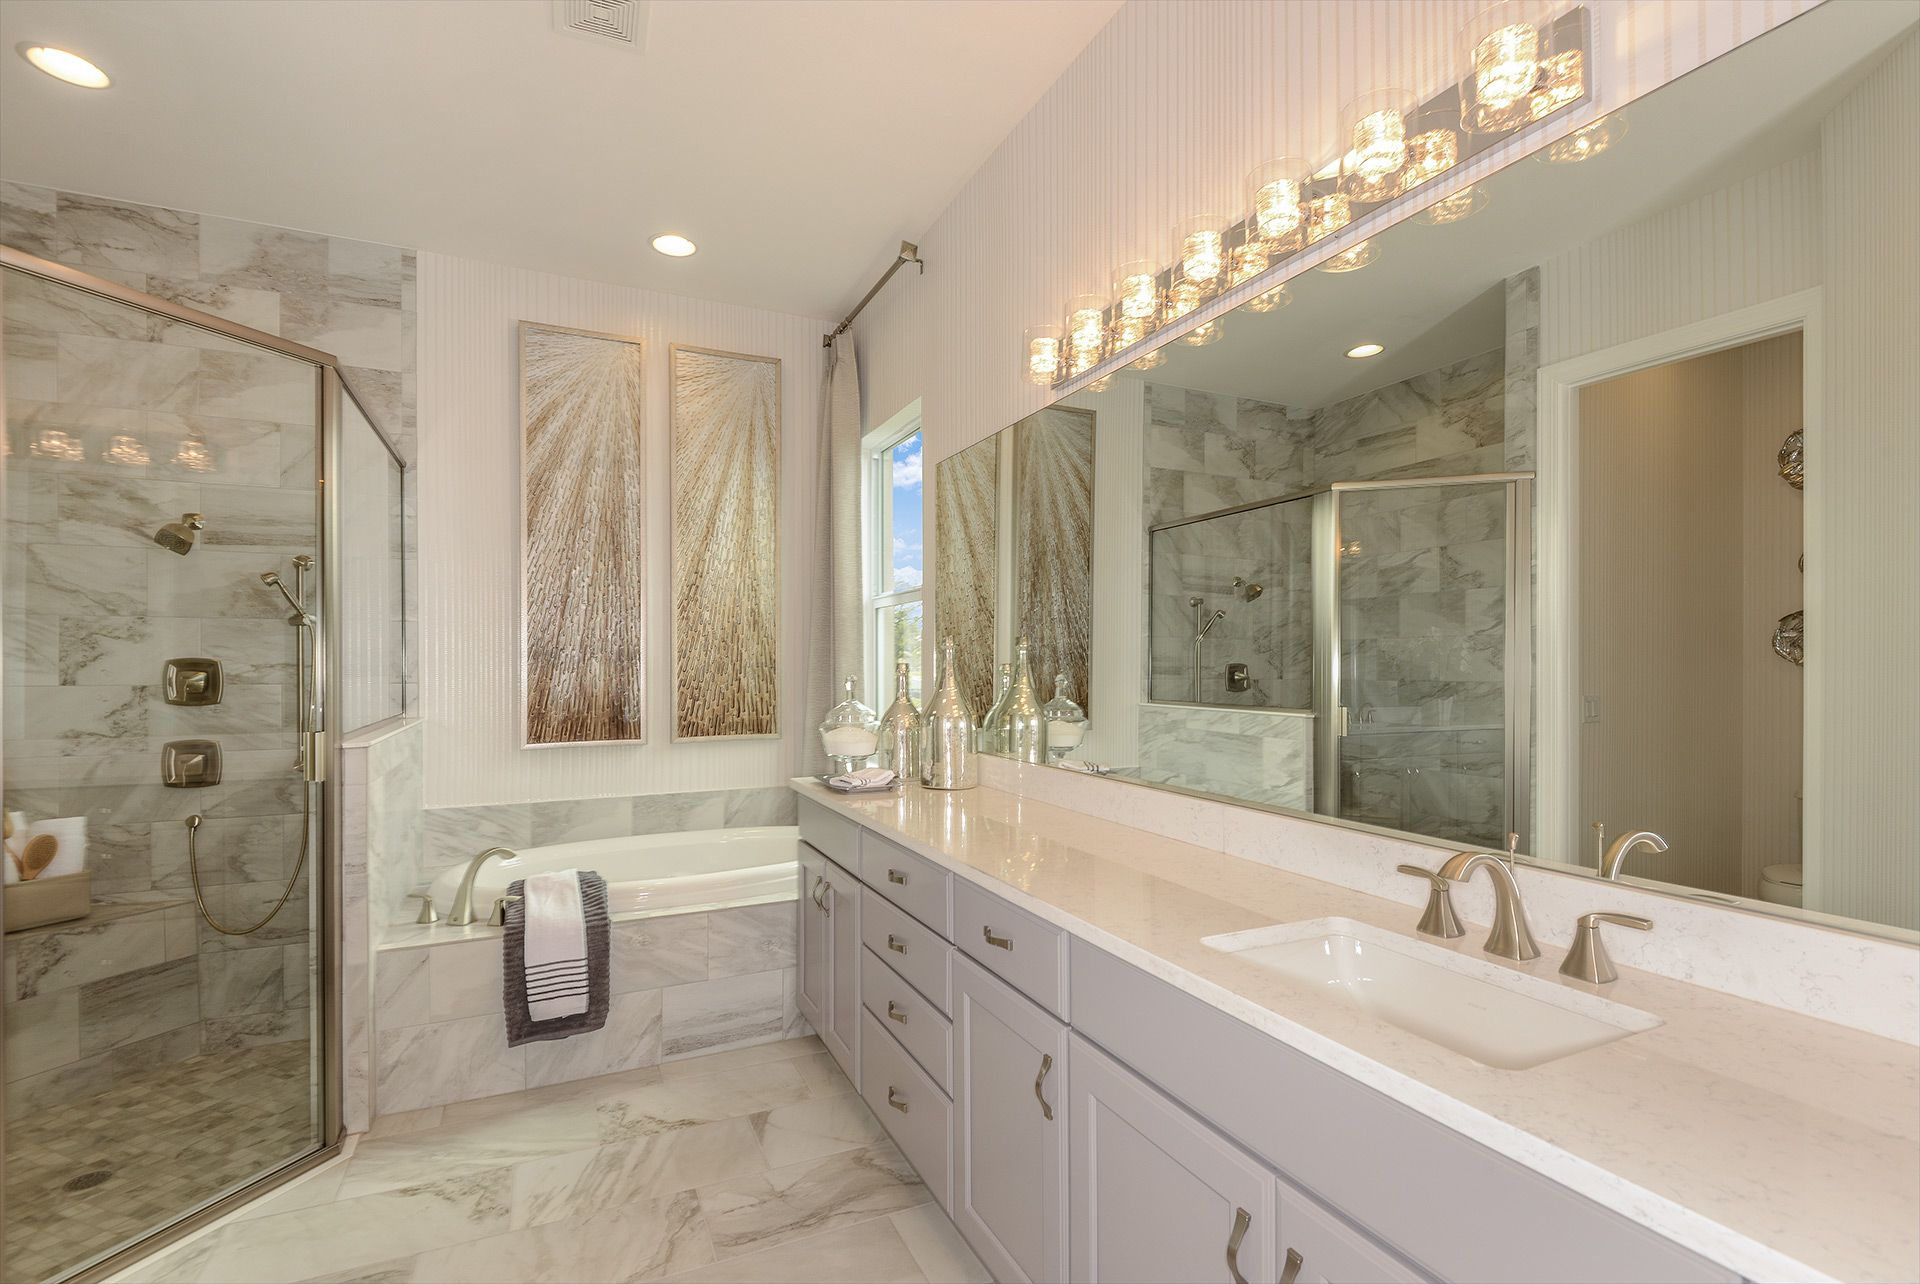 Bathroom featured in the Aruba By GL Homes in Tampa-St. Petersburg, FL